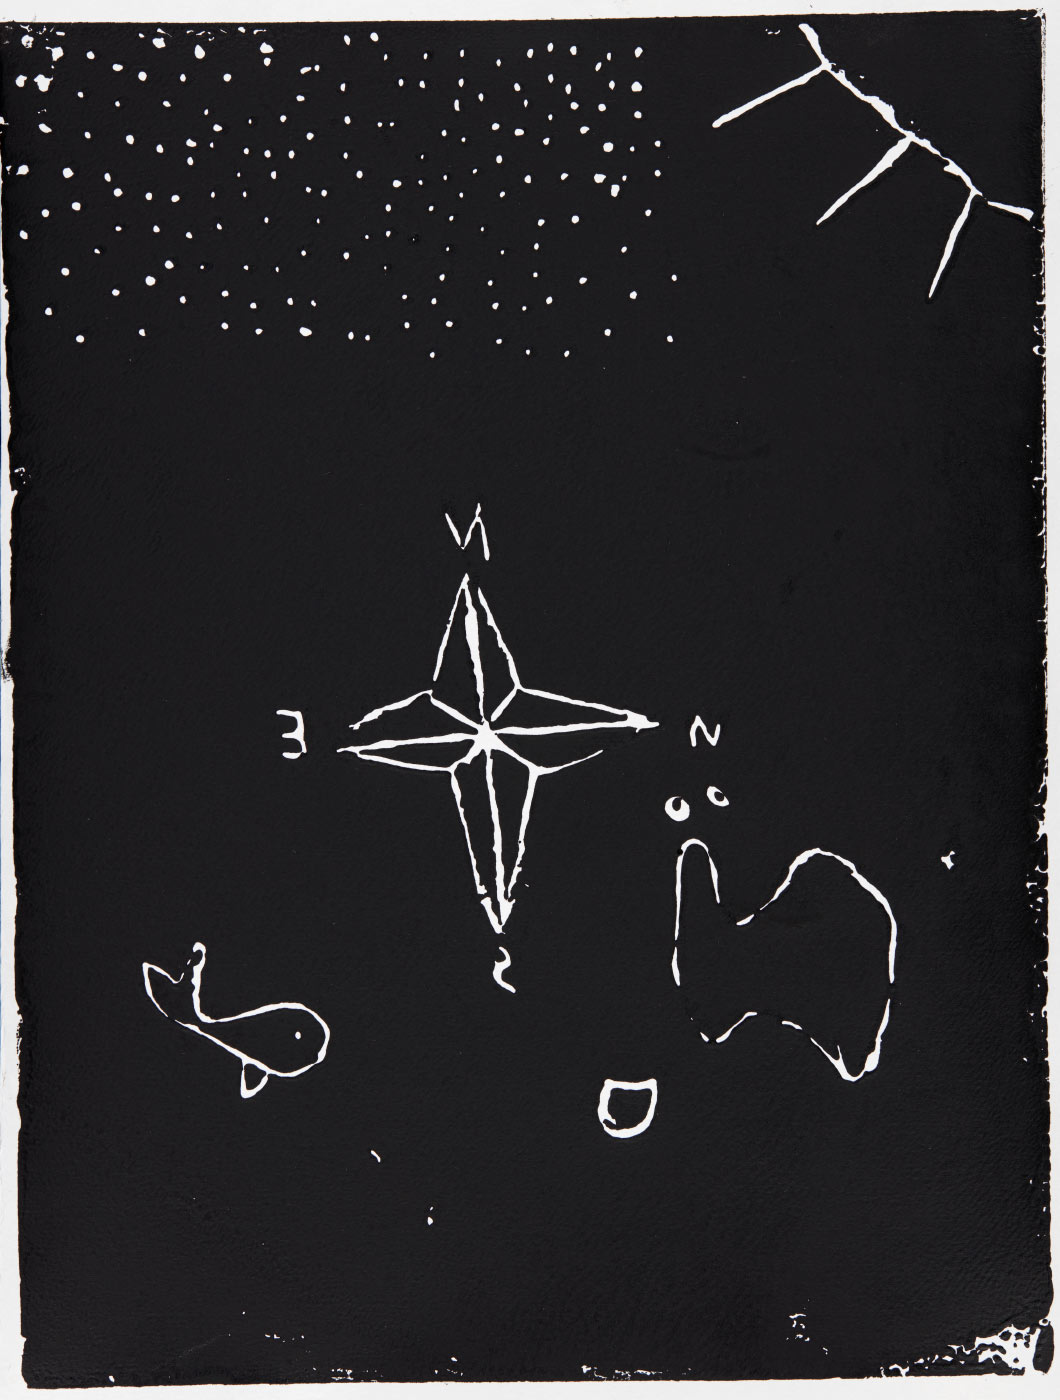 Print, black ink on white paper, depicting a compass, a whale, and Australia (printed in reverse?). Annotated in pencil 'Malachi'. - click to view larger image